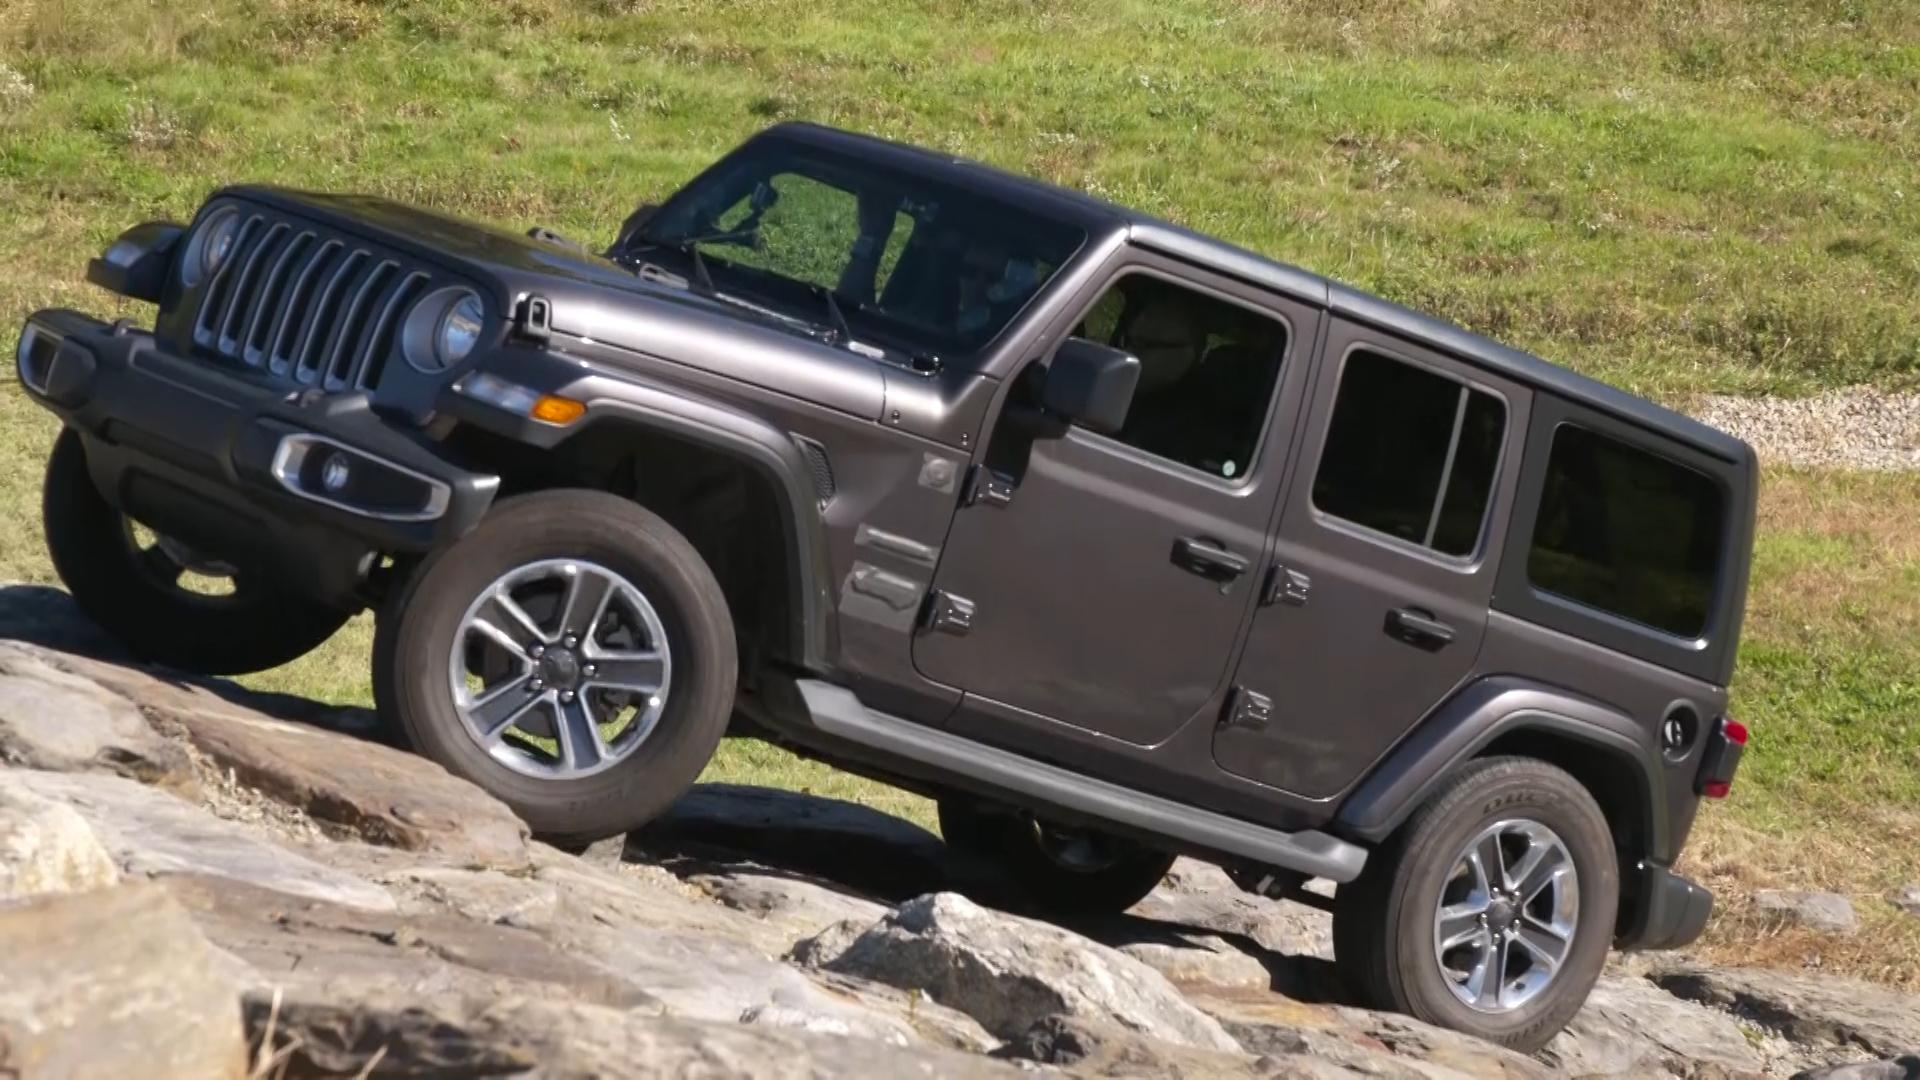 SUVs With the Best Ride - Consumer Reports